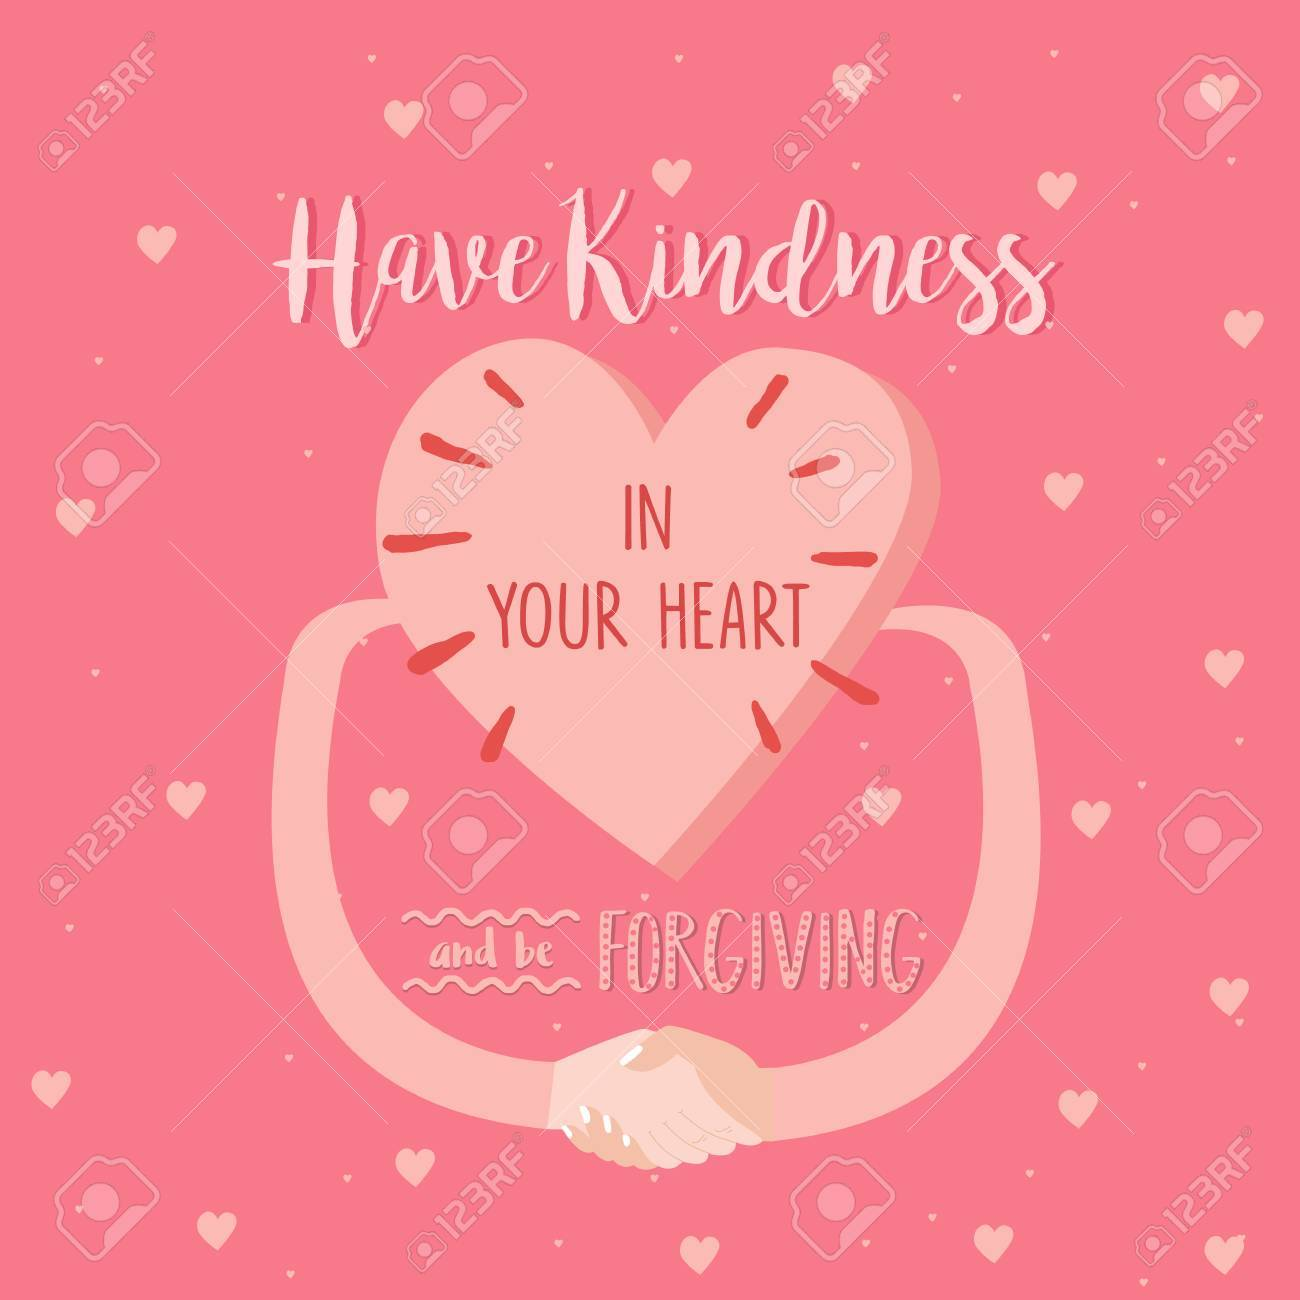 Forgiving Quotes | Have Kindness In Your Heart And Be Forgiving Quotes Pink Poster